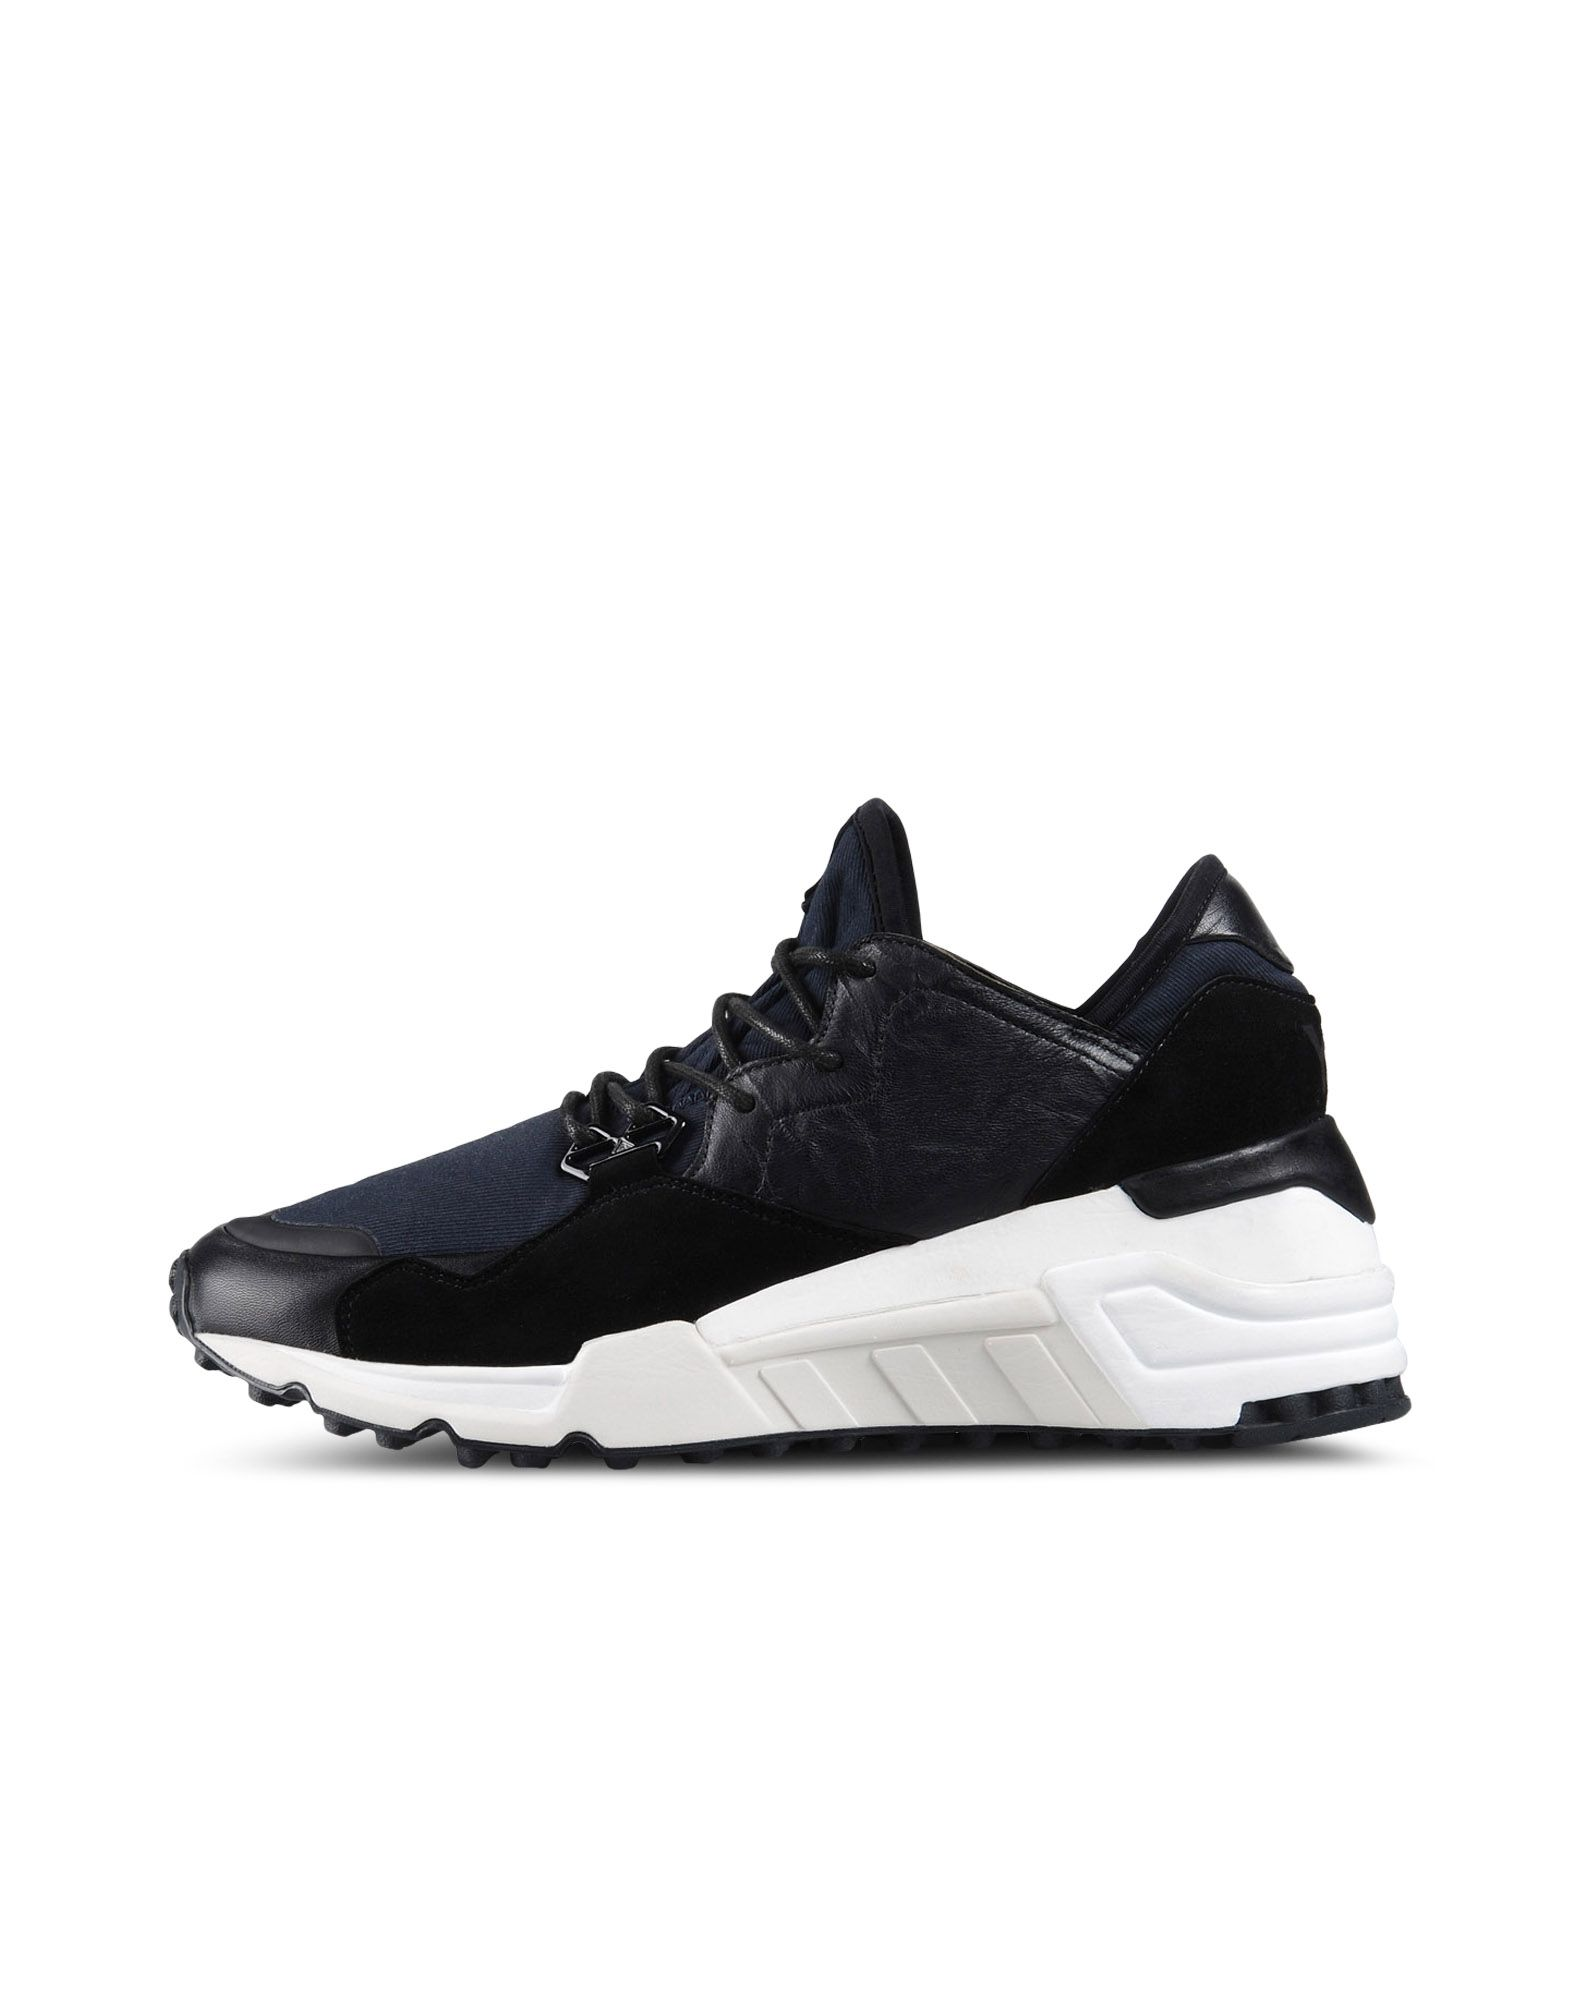 adidas y3 wedge sock run